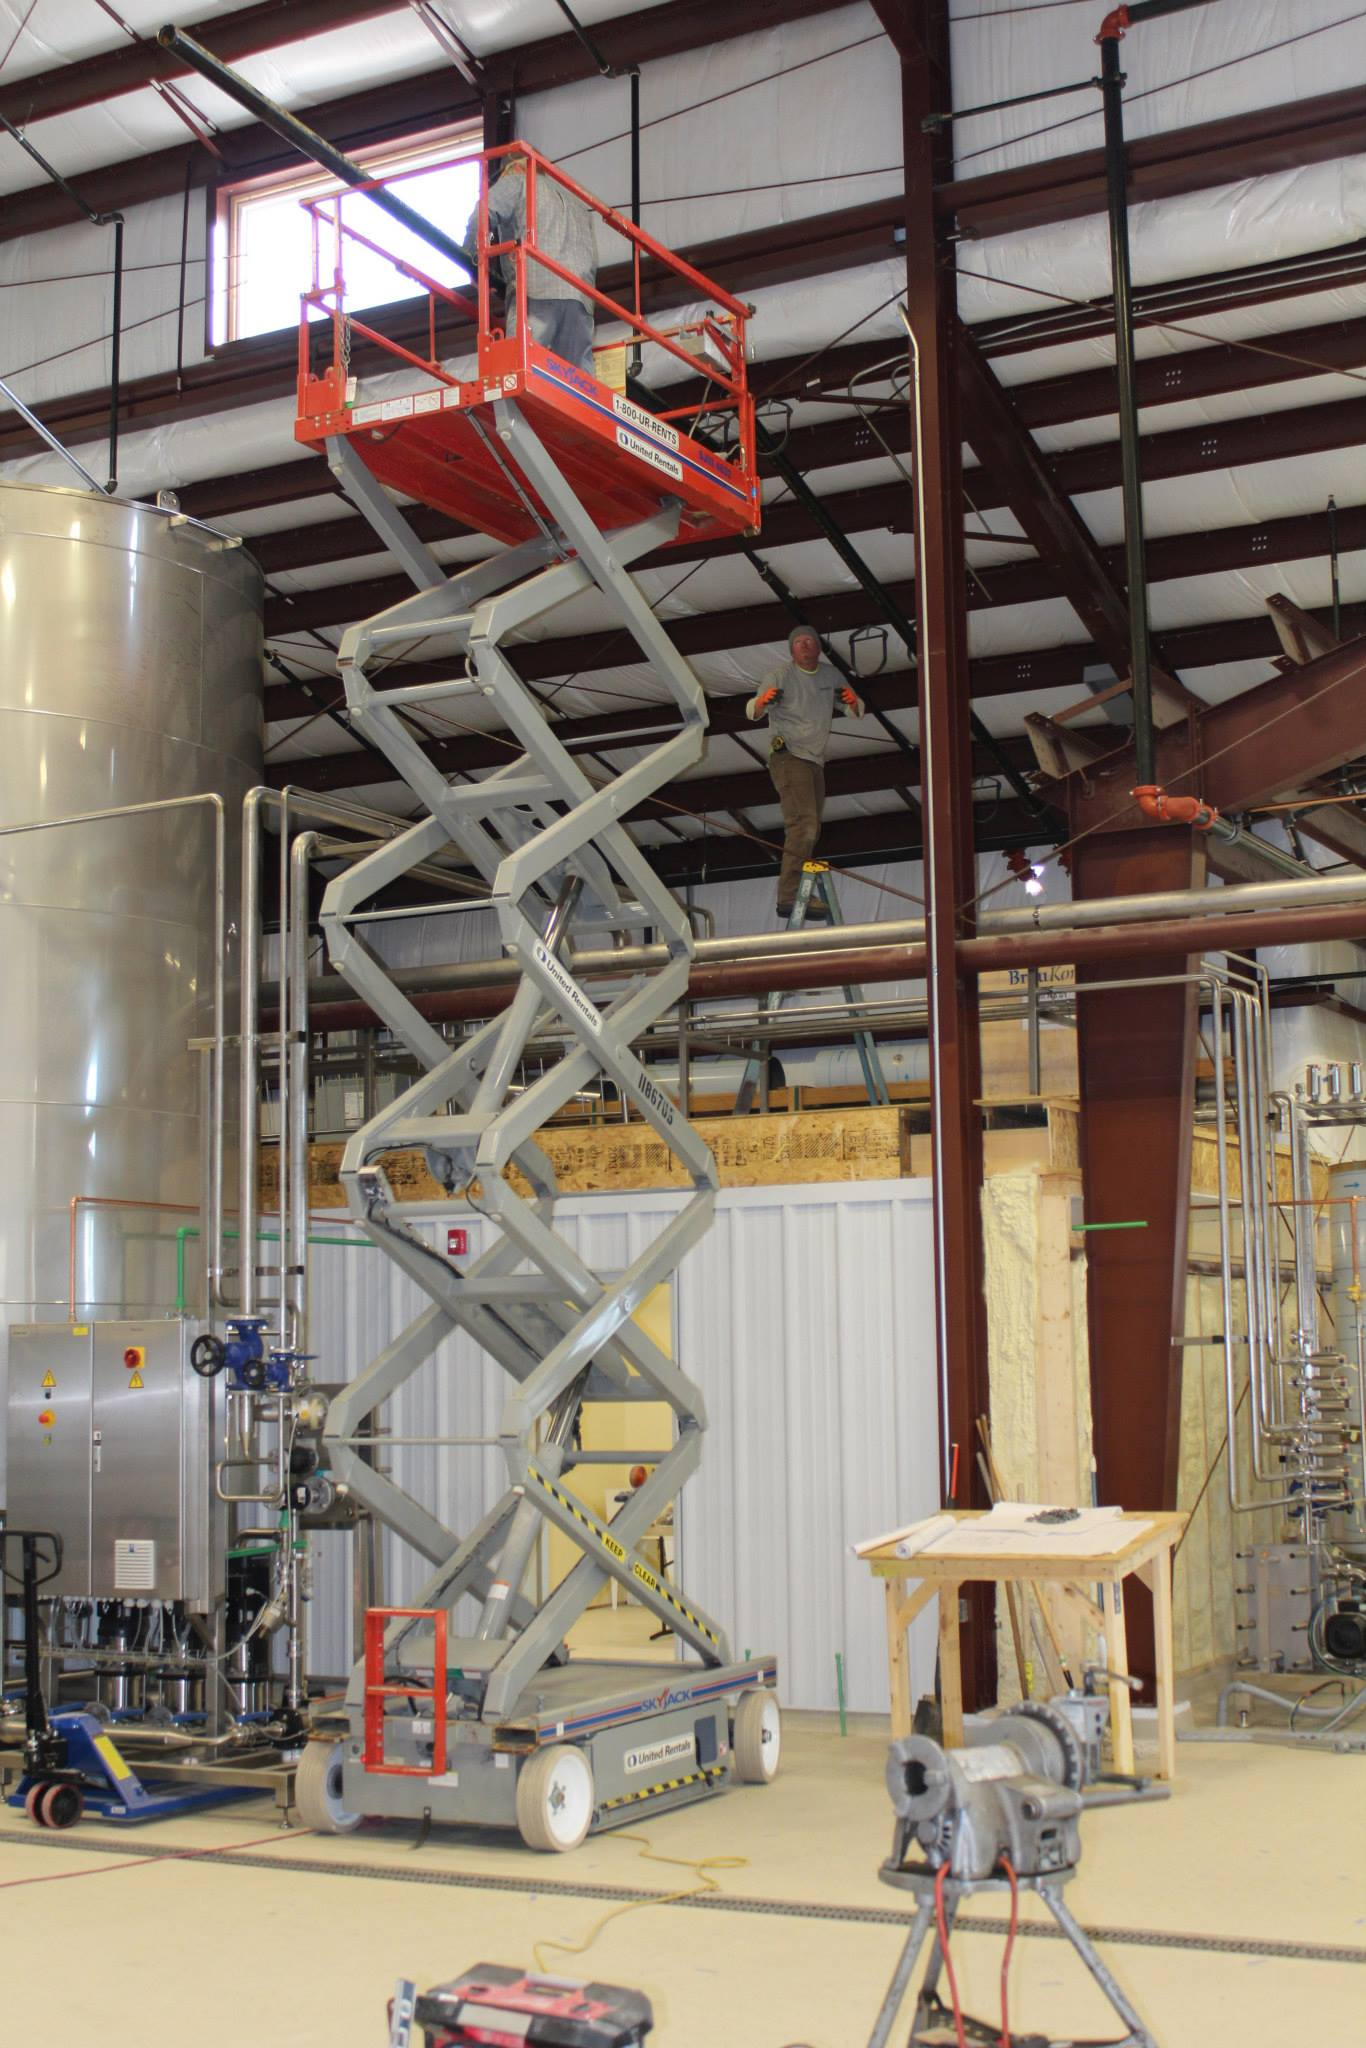 Boulanger's Plumbing of Northampton working on the glycol system